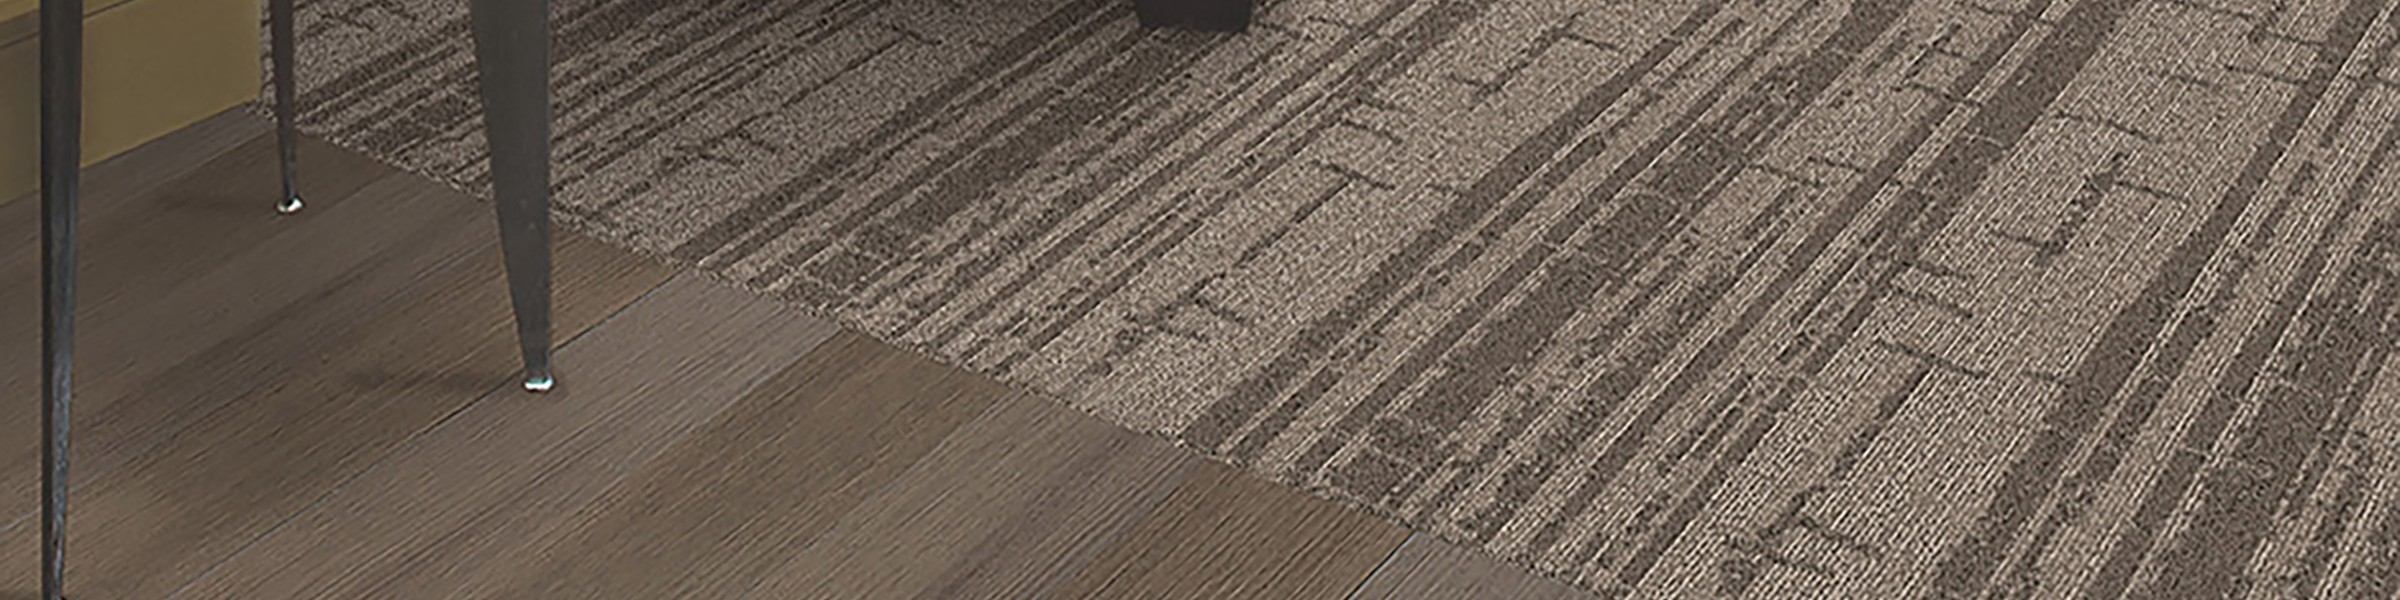 From the leading manufacturer of hospitality flooring, Durkan Select is a line of coordinating, high-quality products that are created to work perfectly ...